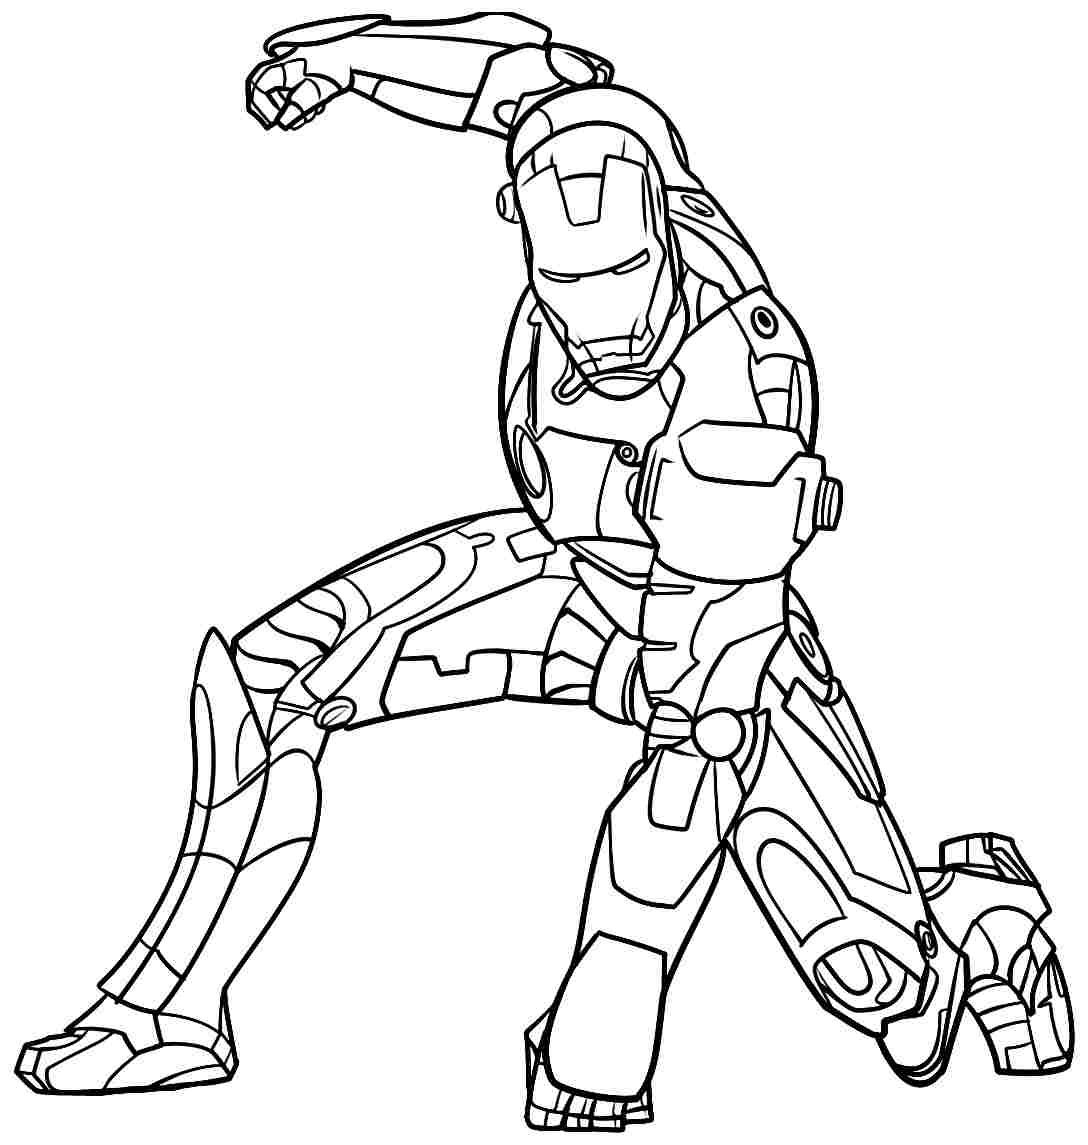 iron man colouring book free printable iron man coloring pages for kids best man book colouring iron